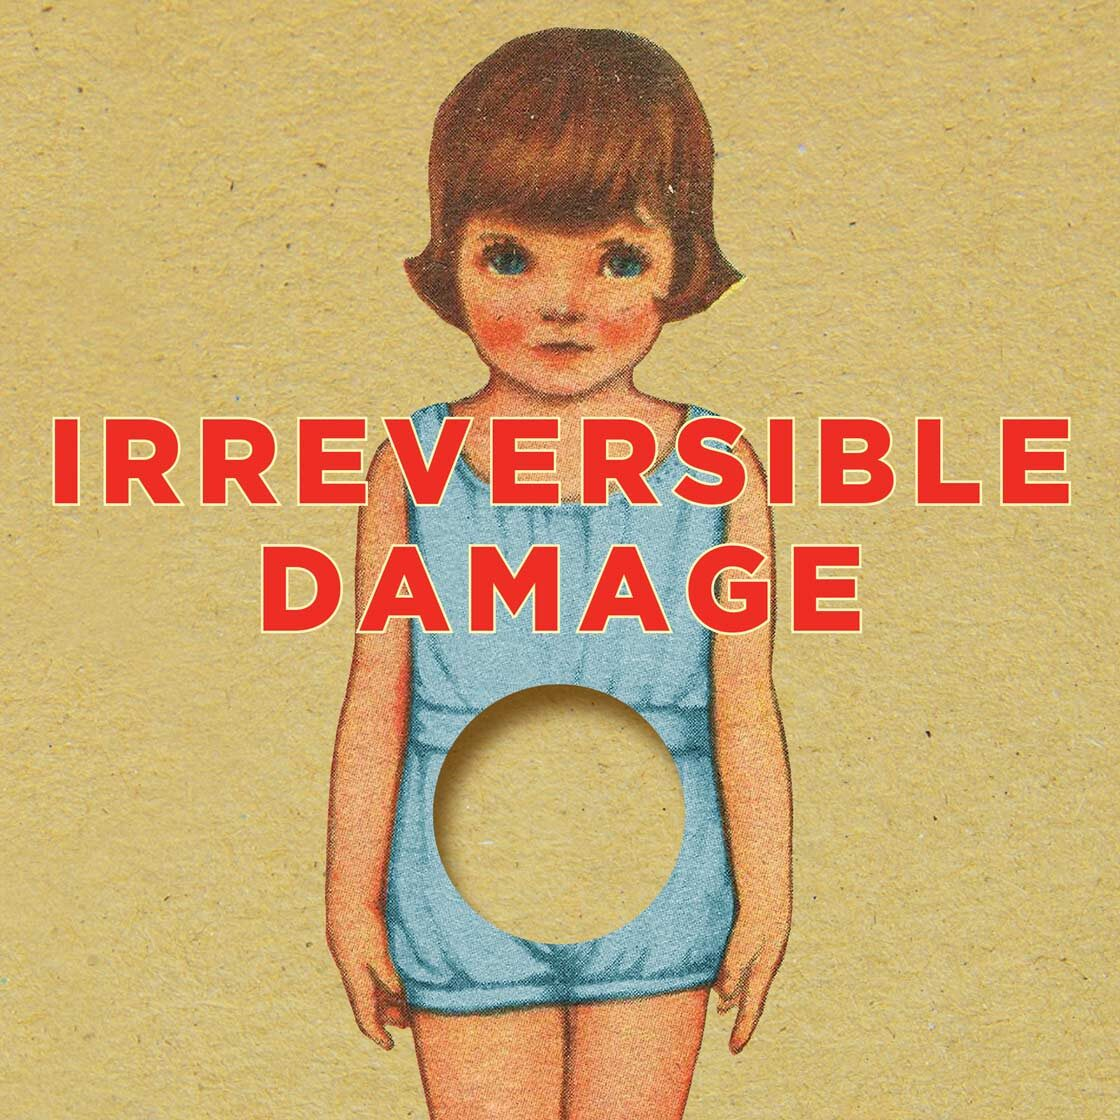 Detail of cover of Irreversible Damage, by Abigail Shrier